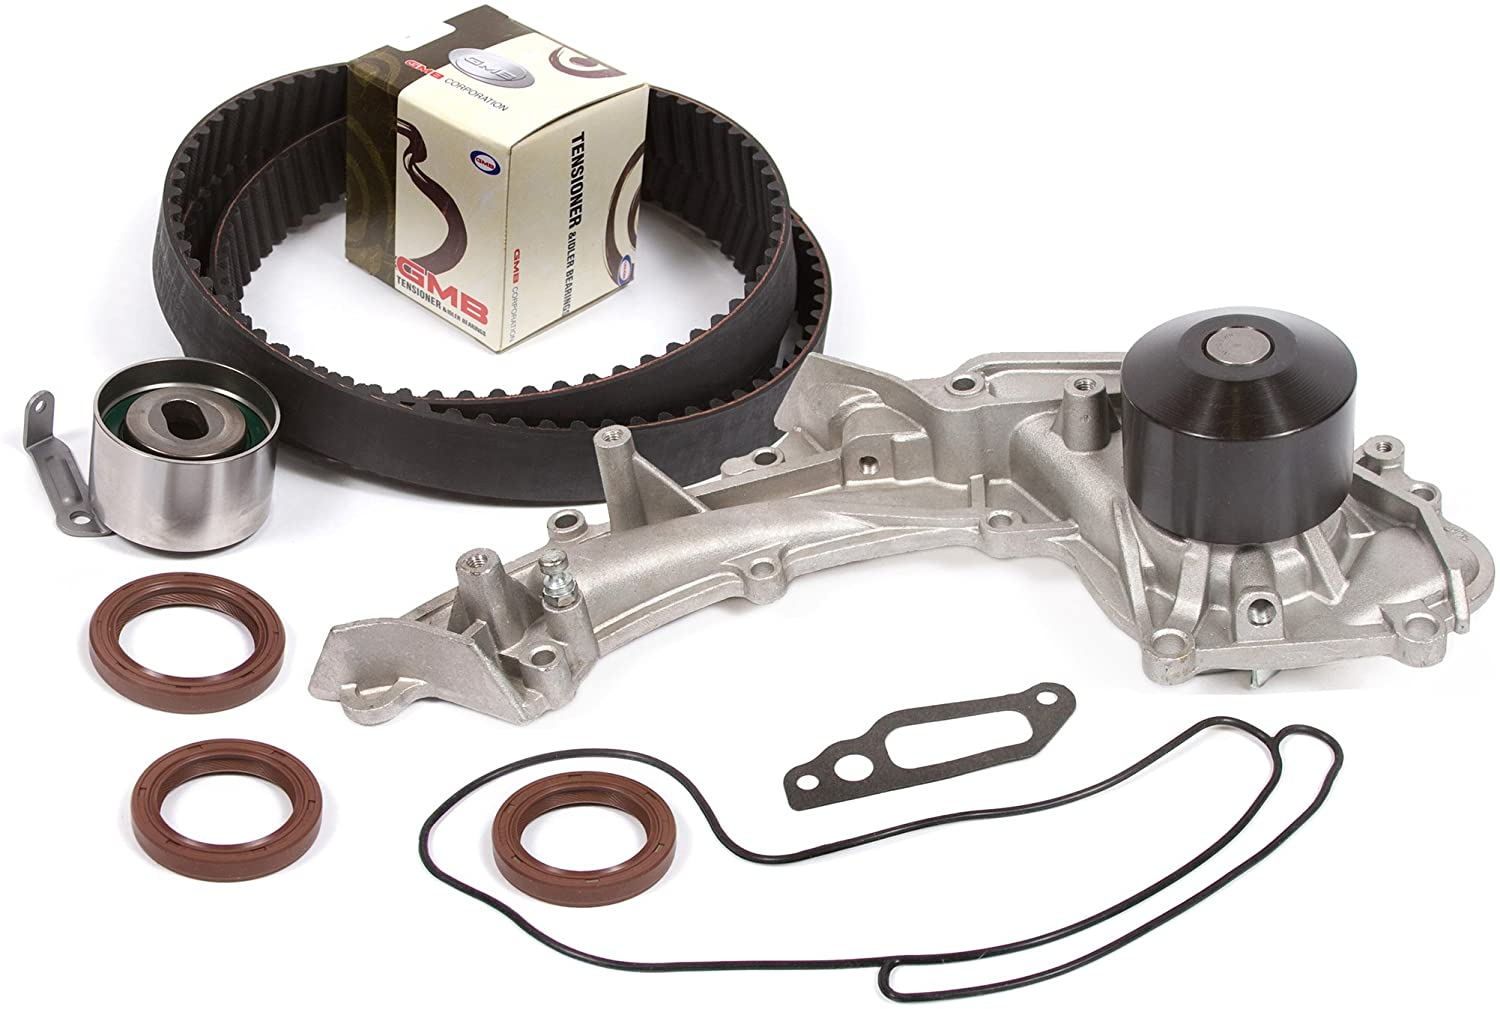 Compatible With 96-98 Acura 3.2 SOHC 24V C32A6 Timing Belt Kit Water Pump